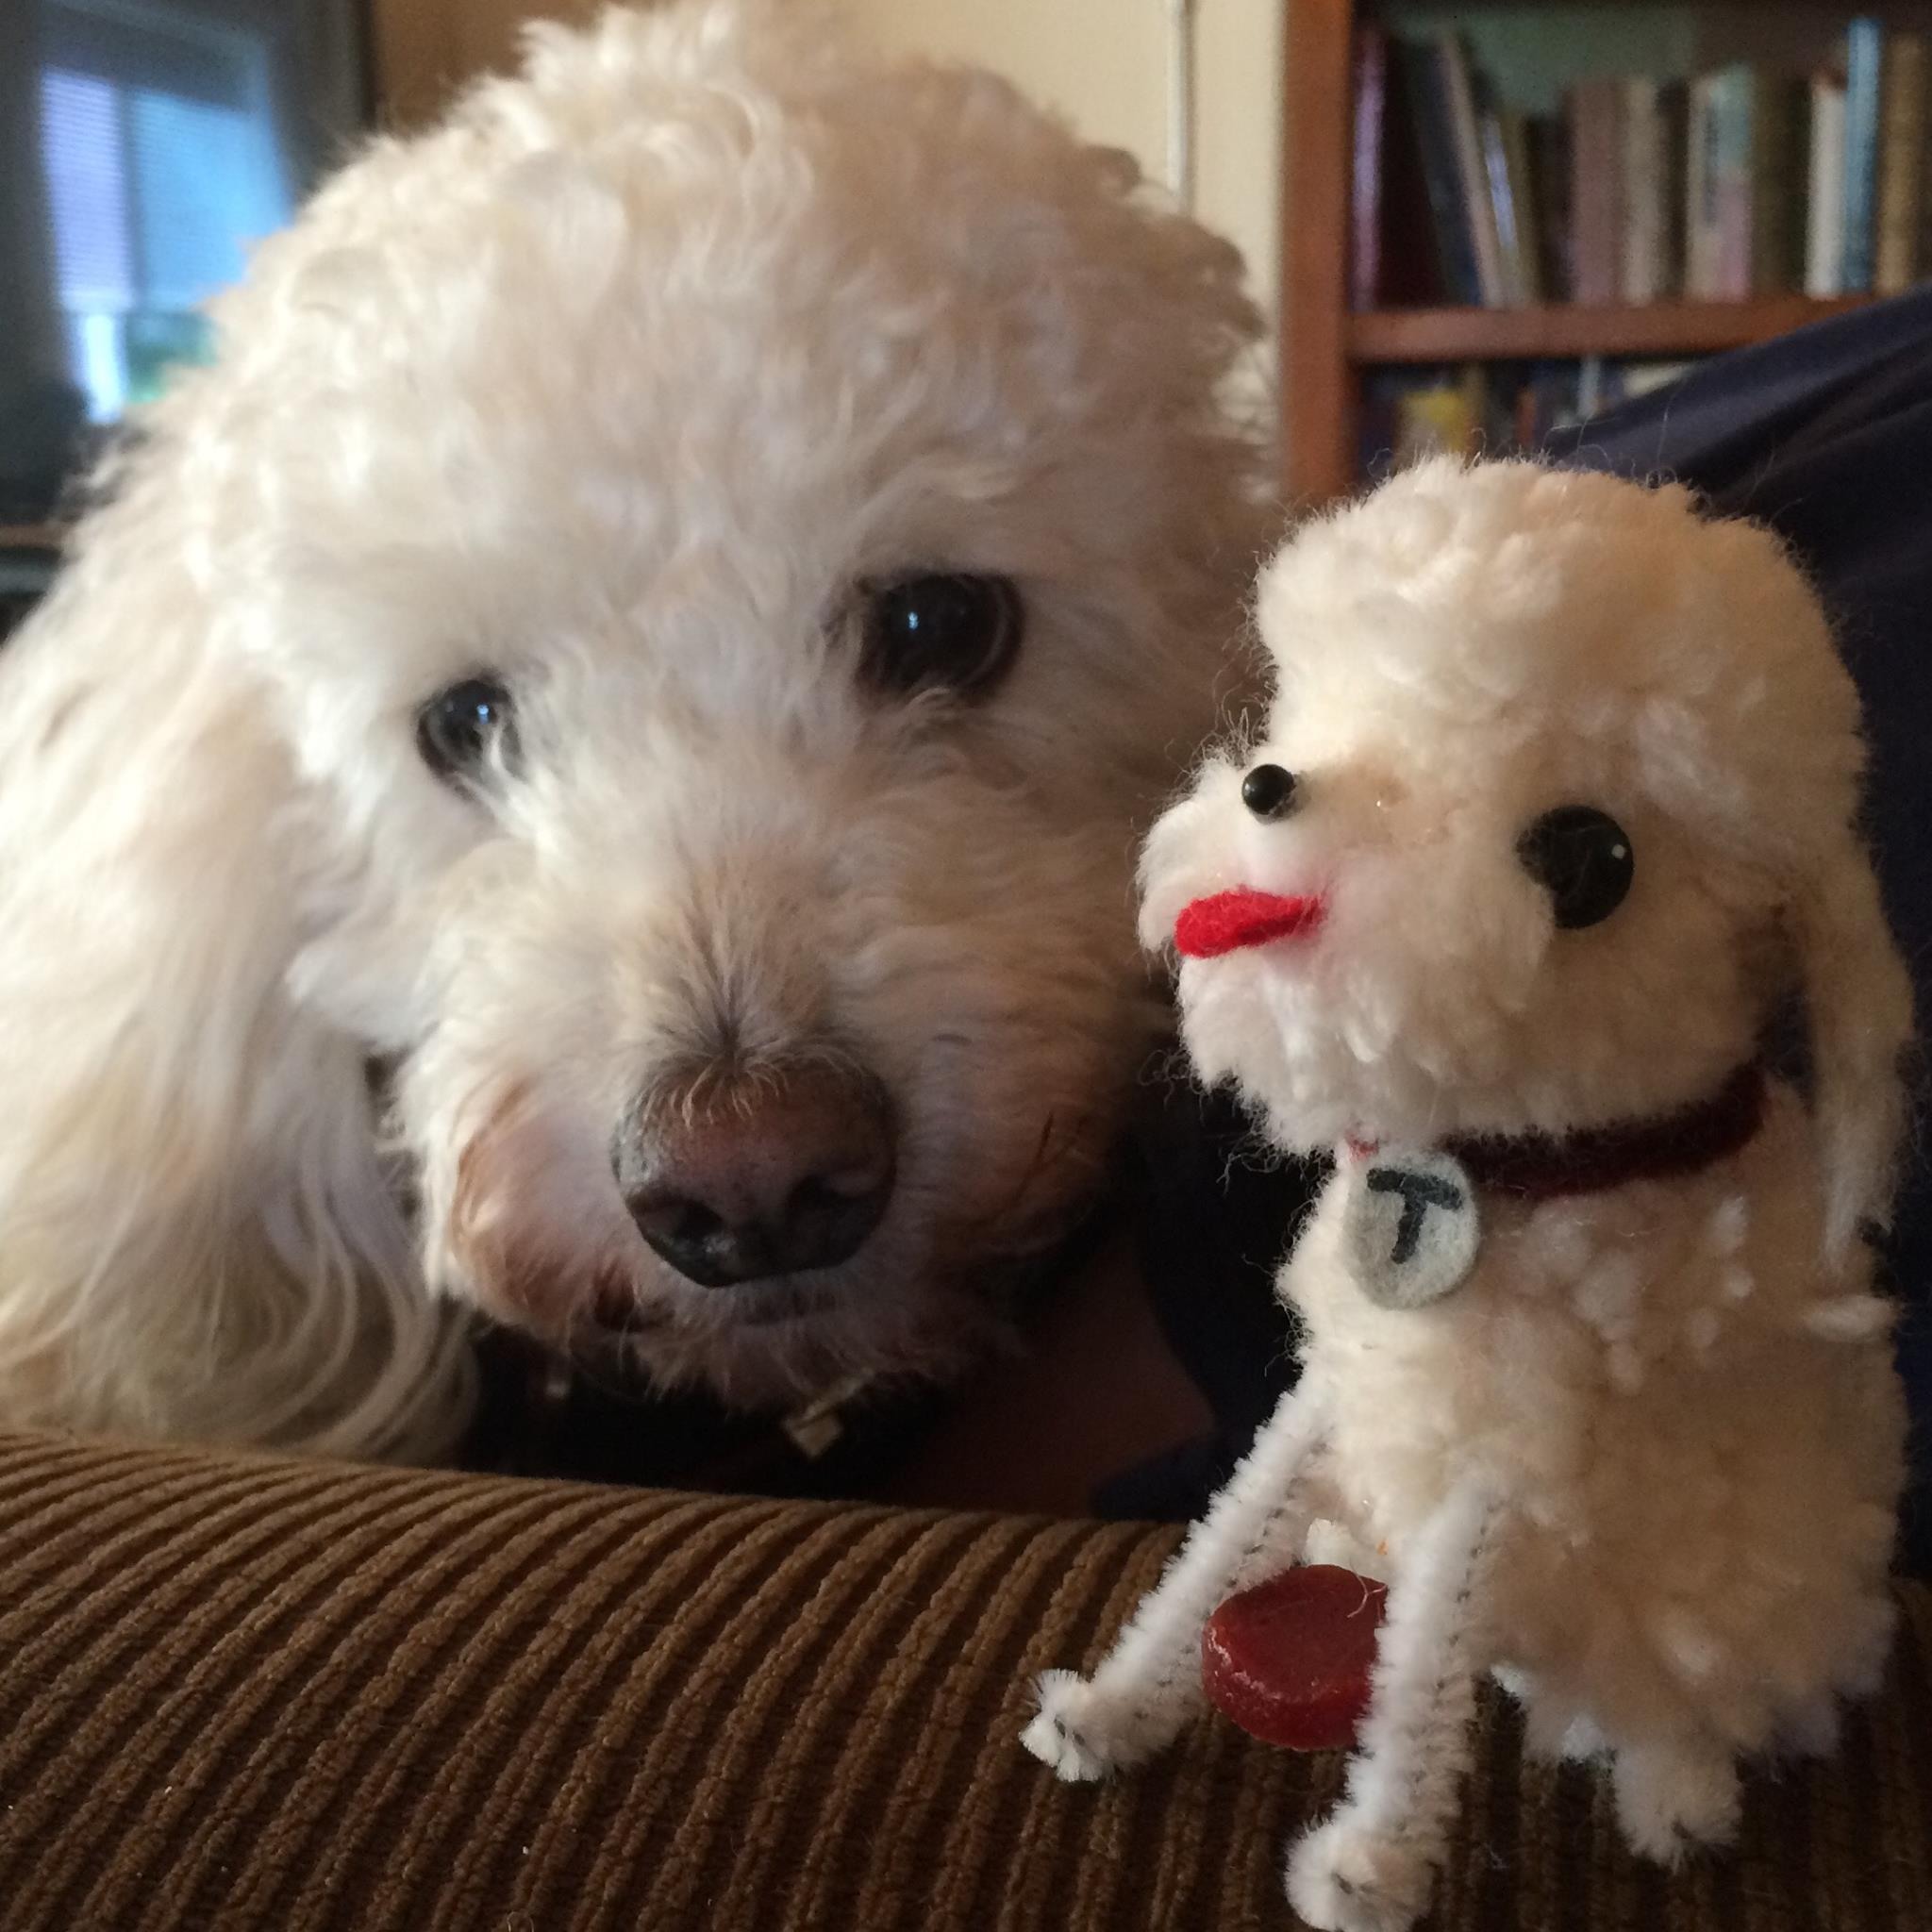 Toby and mini poodle.jpg